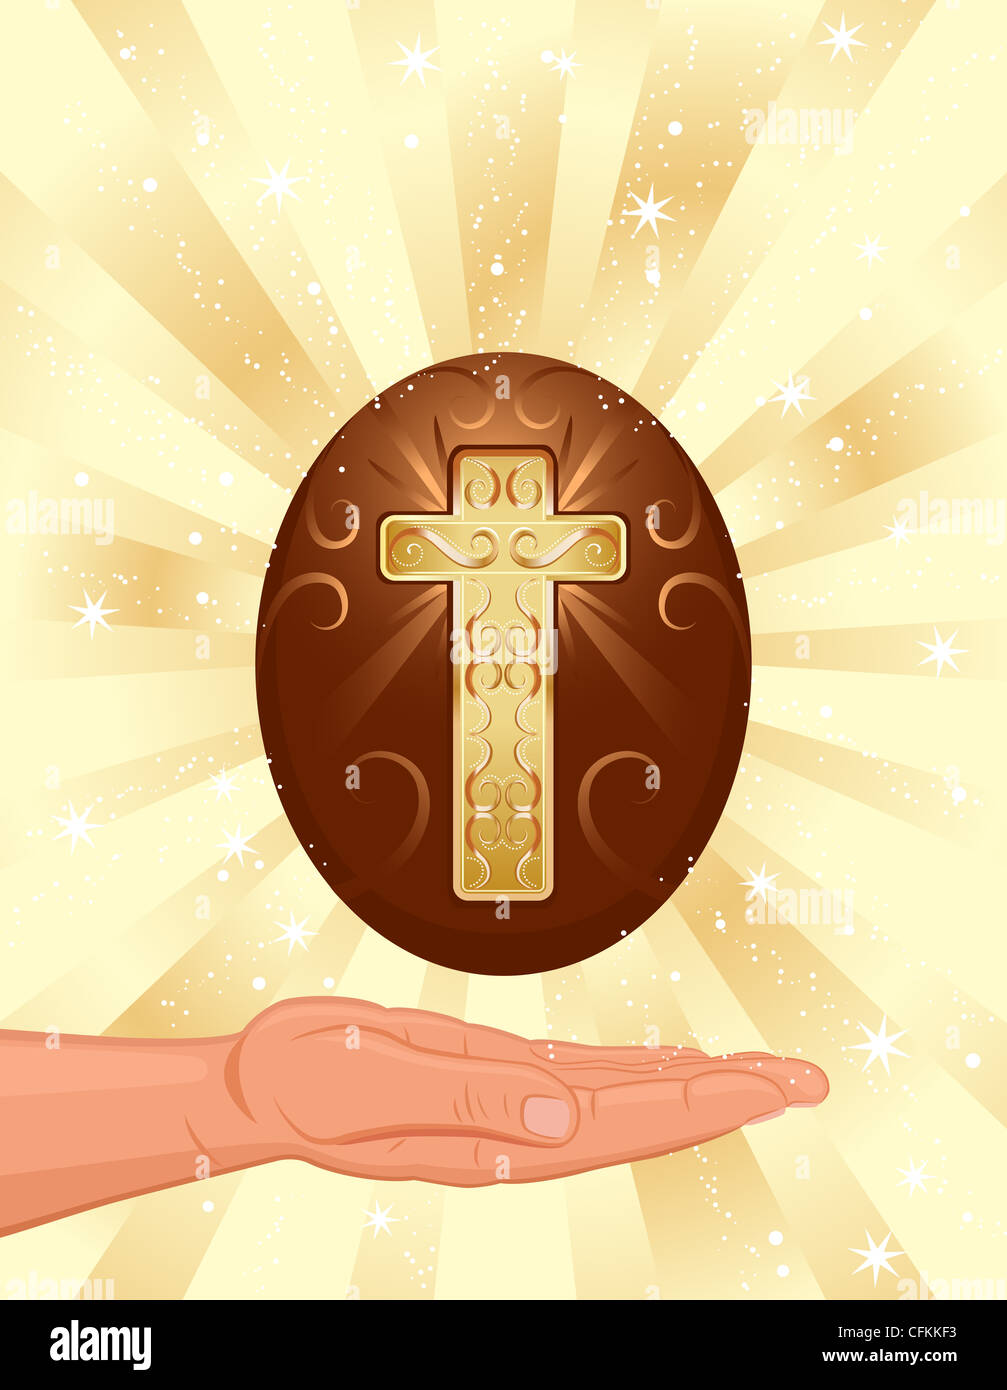 Easter religious card with golden Christian cross and decorated egg. - Stock Image